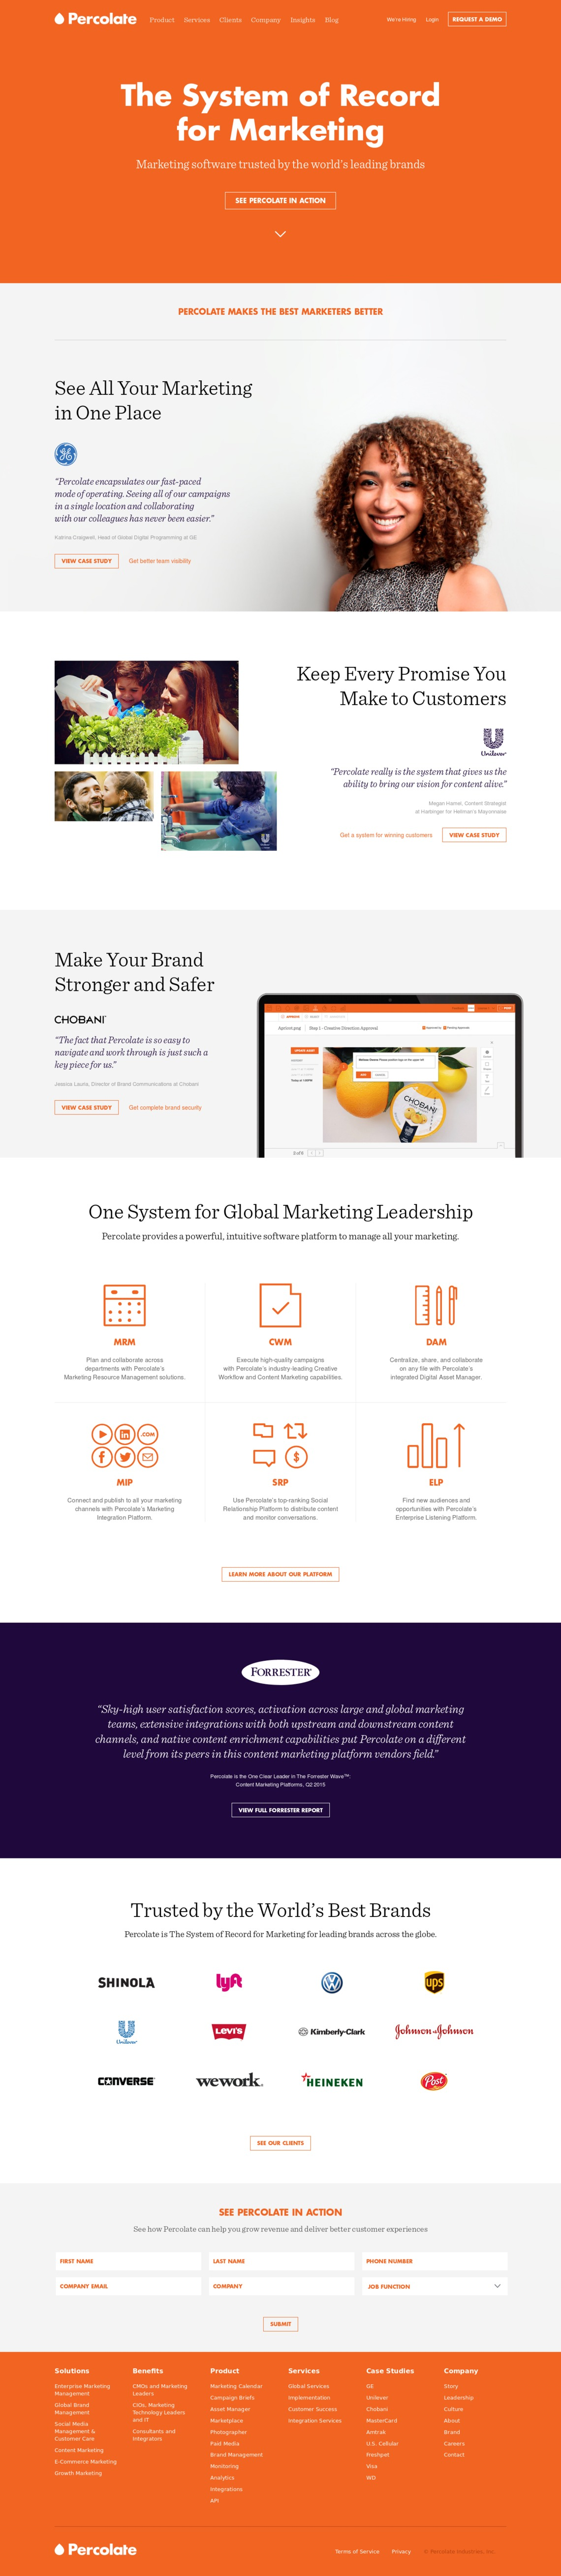 Percolate | Complete Marketing Software for Global Brands